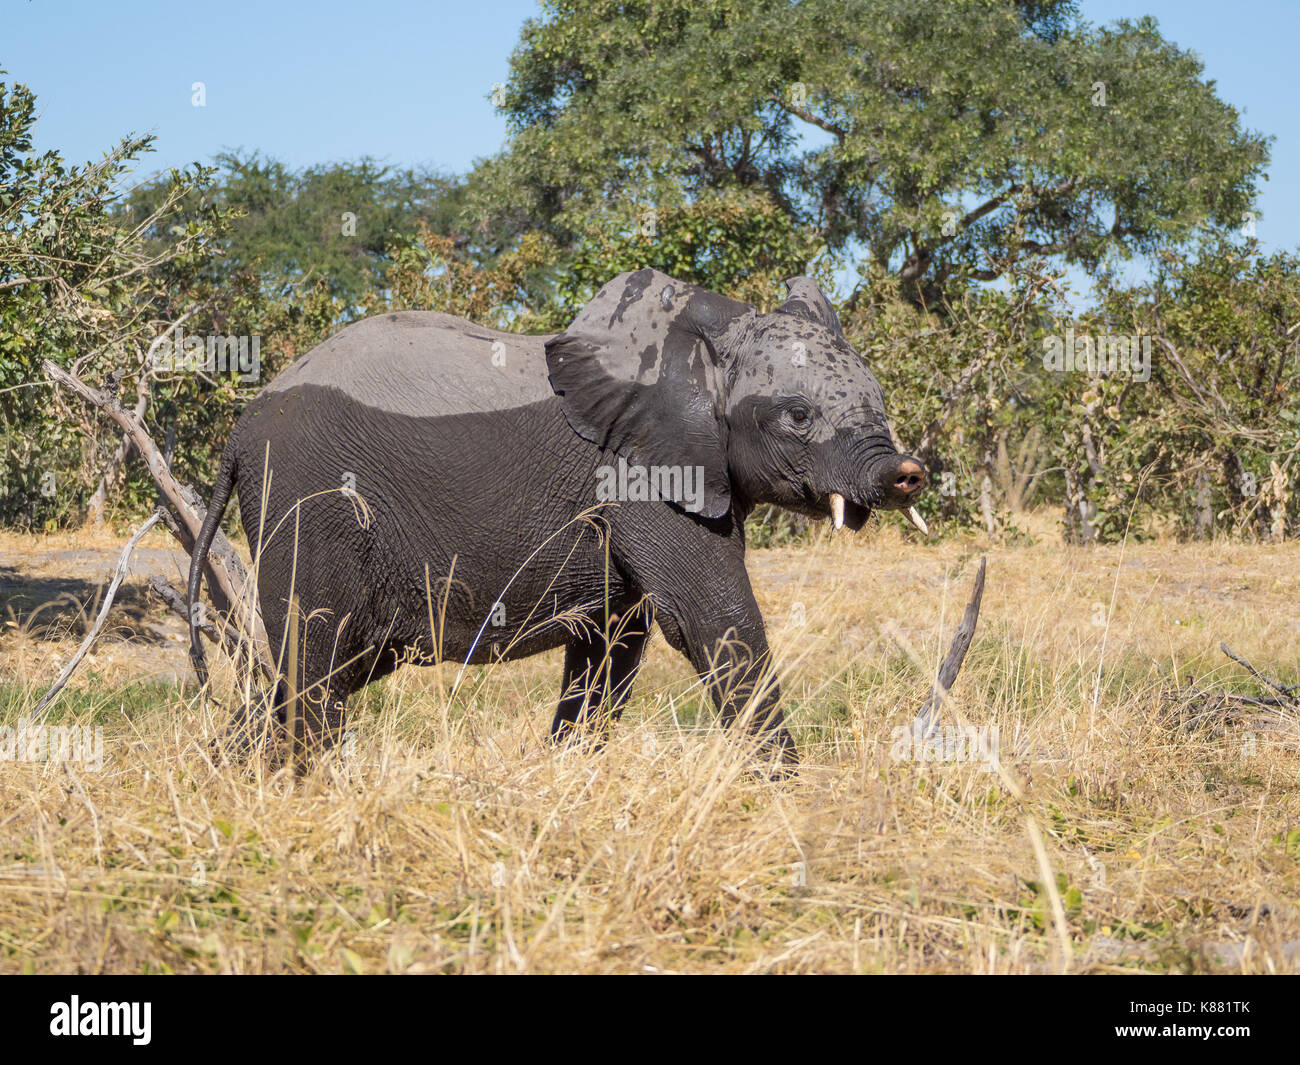 Younger elephant with crippled trunk walking away from Kwai river, Moremi NP, Botswana, Africa. - Stock Image